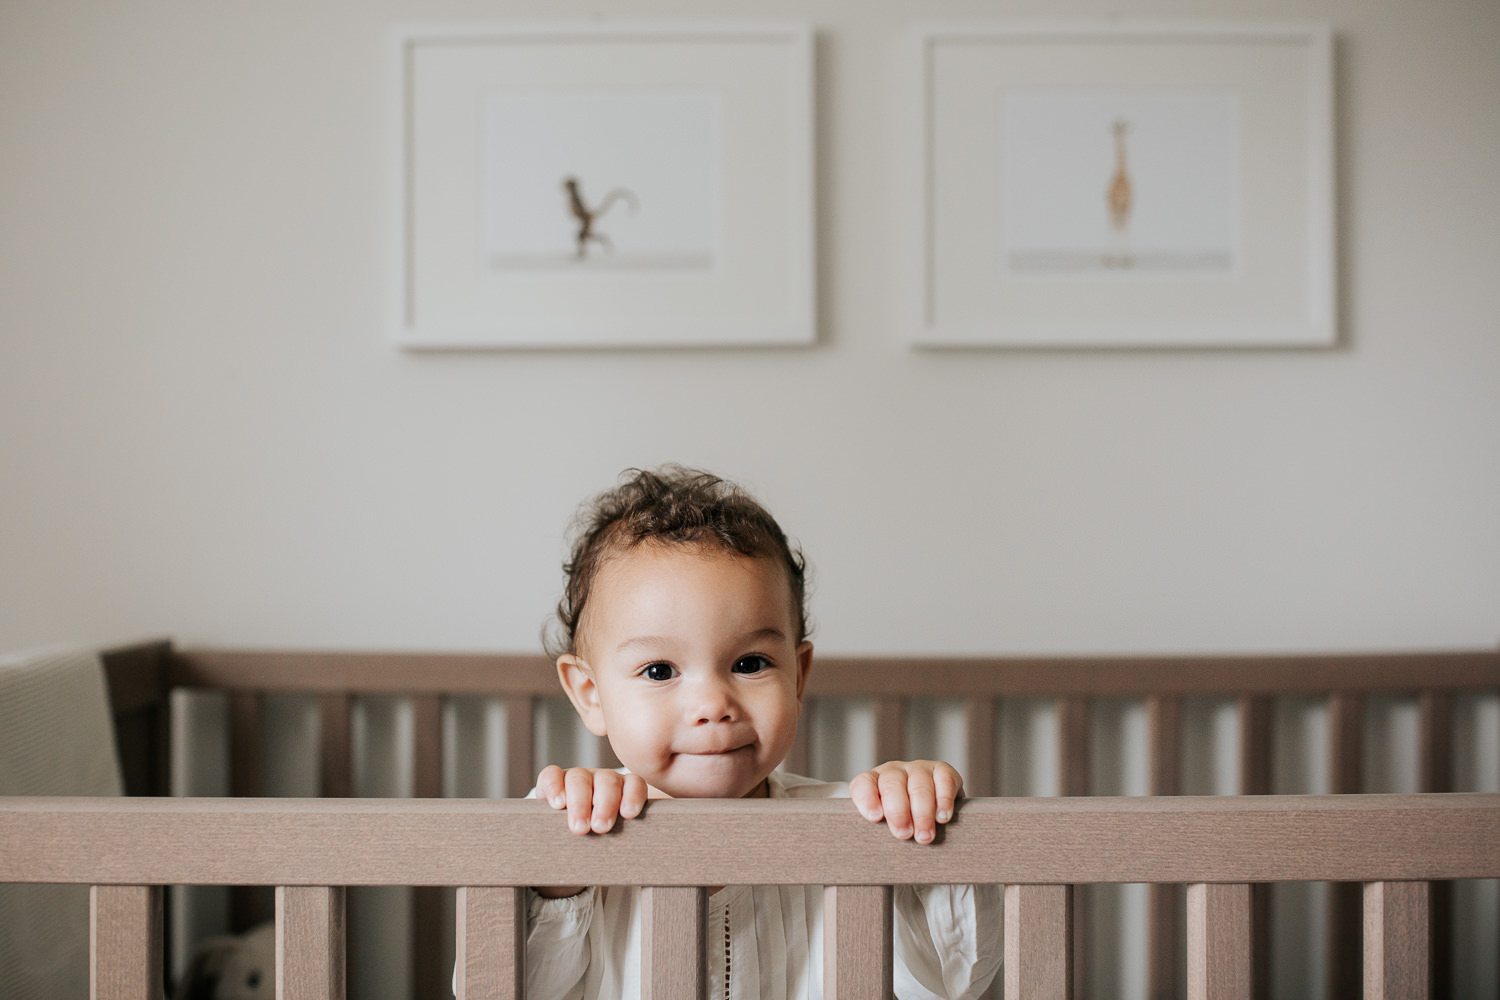 2 year old girl with dark curly hair and brown eyes in cream top and dark pants standing in crib looking at camera in neutral nursery with animal prints on wall -Newmarket Lifestyle Photography